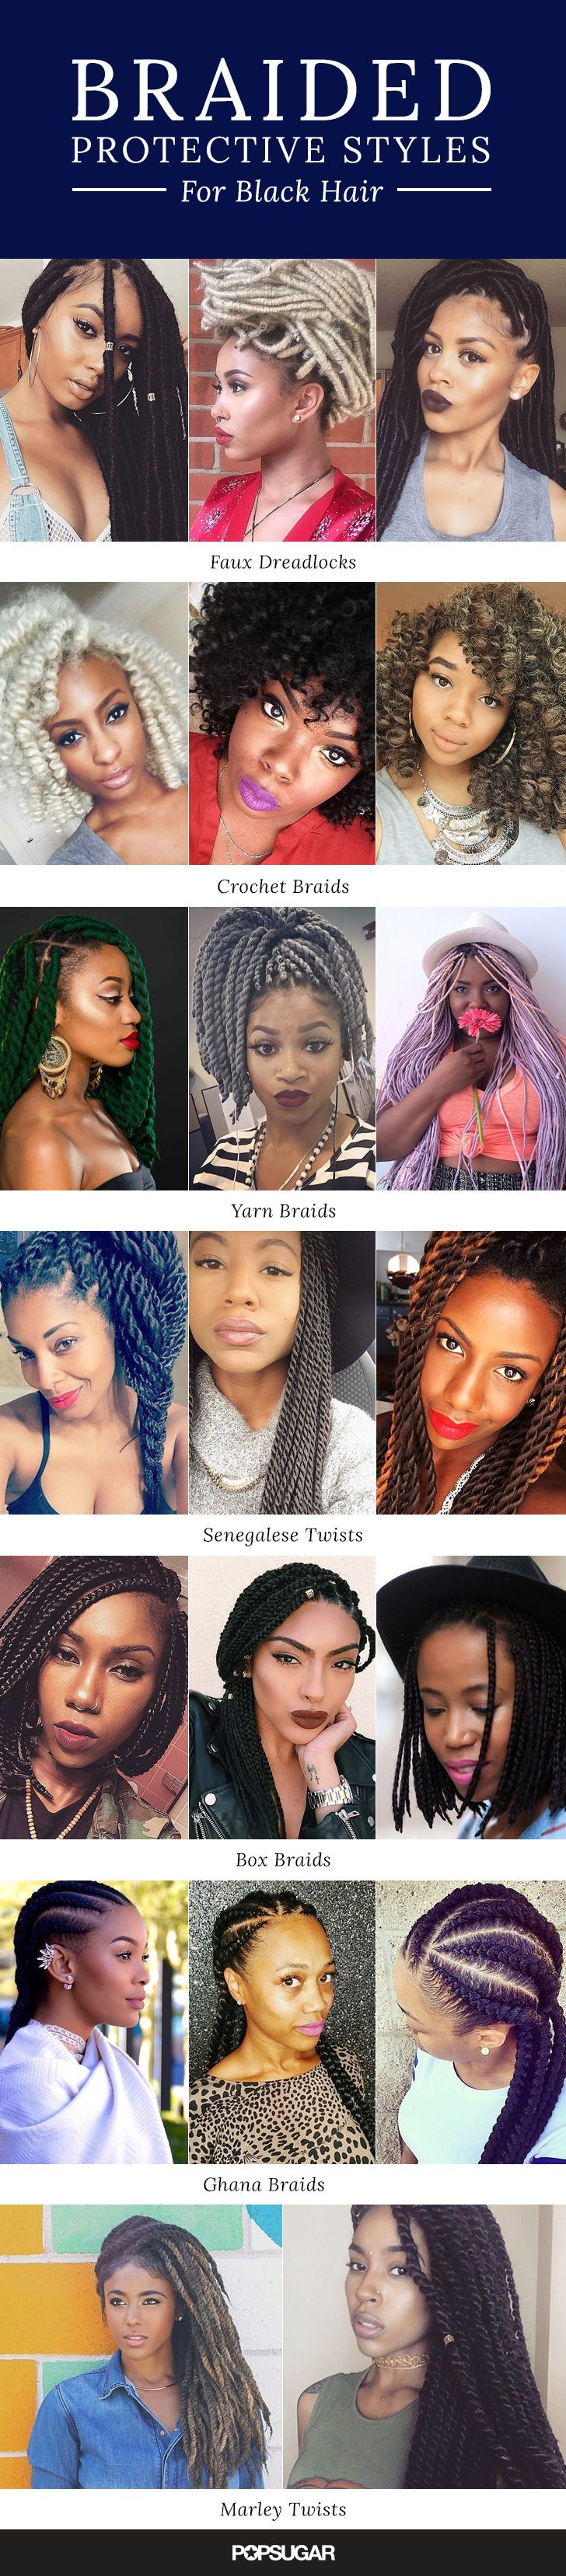 Summer braids aren't just reserved for little girls. My friends still get plaits before a big vacation or to take a break from using hot tools. Even Beyoncé and Solange Knowles rock twists when the weather gets warm! I've broken down the best braids with extensions for Afro hair this season.